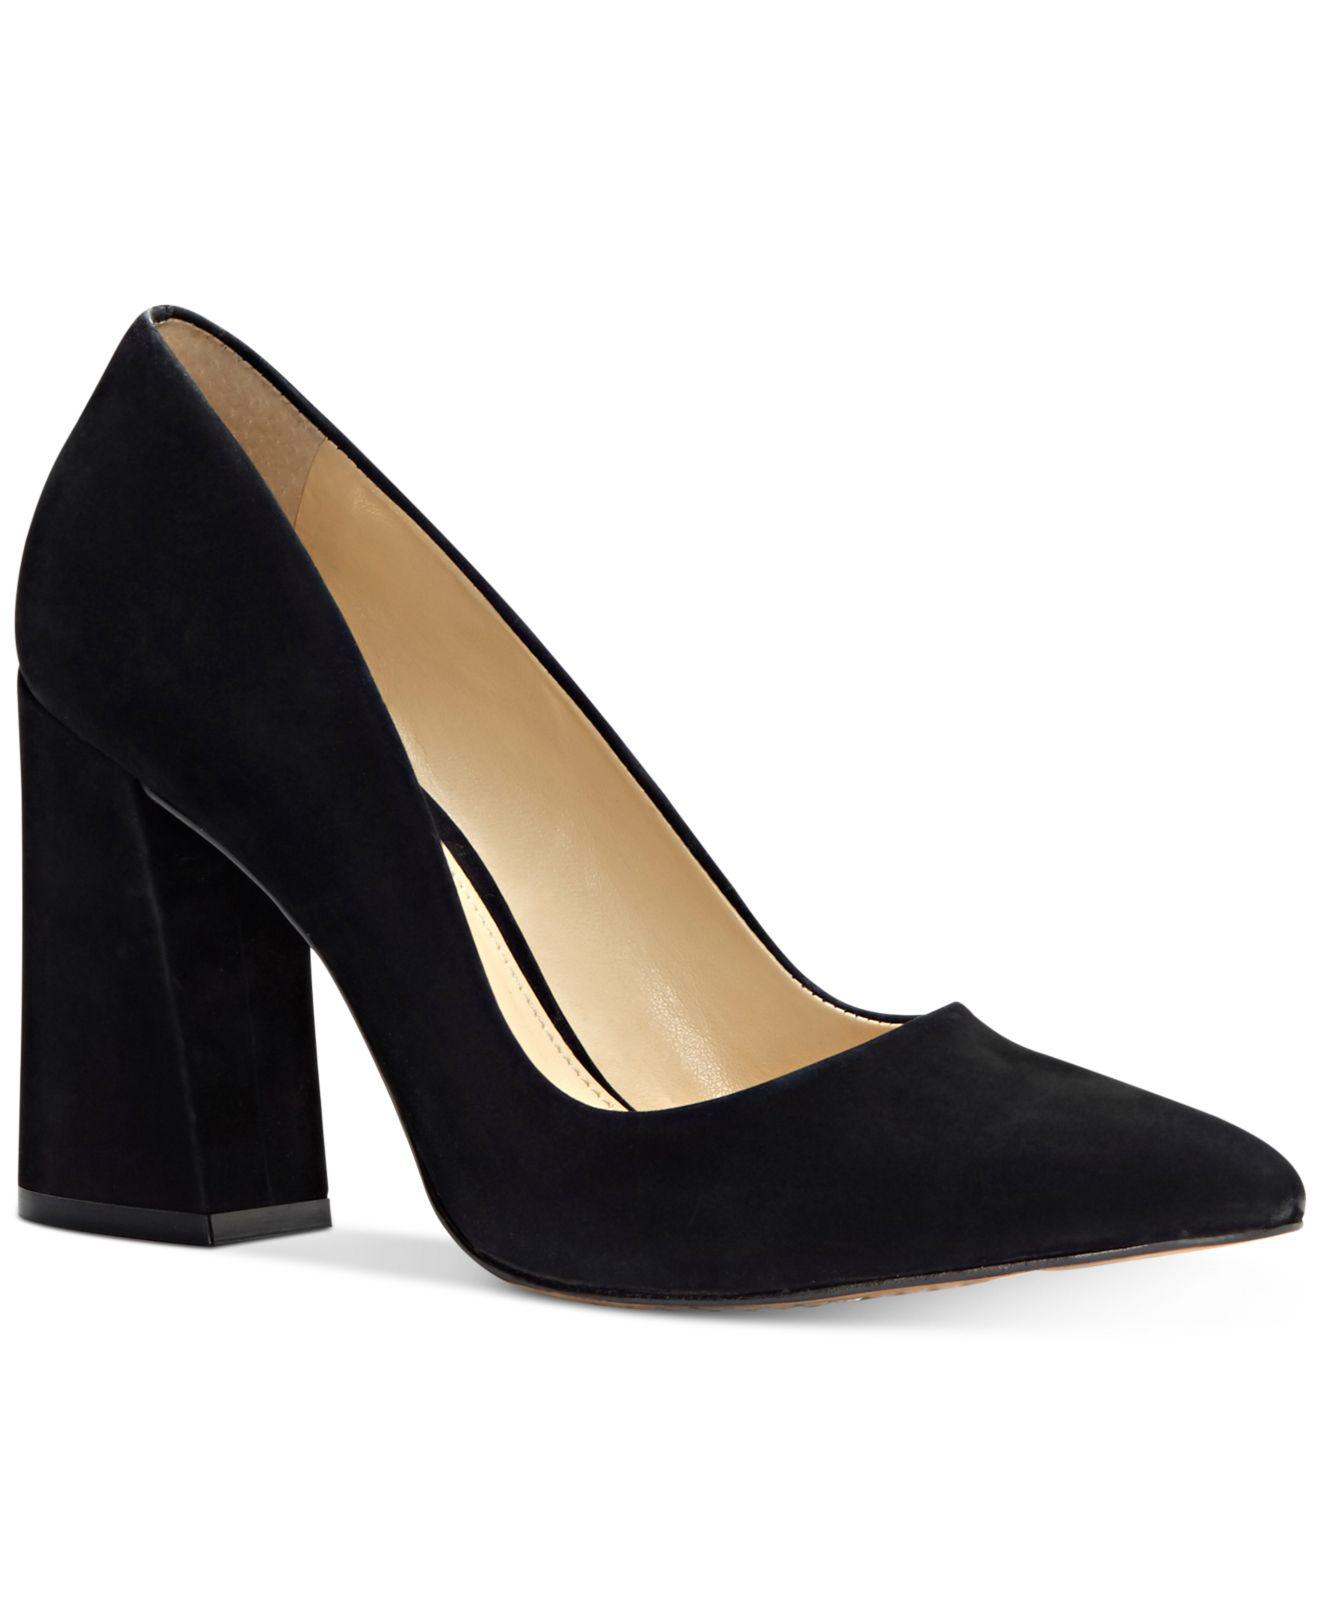 with credit card cheap price outlet visa payment Vince Camuto Suede Pointy Toe Block Heel Pumps - Talise discount in China free shipping very cheap ql5O4x6q